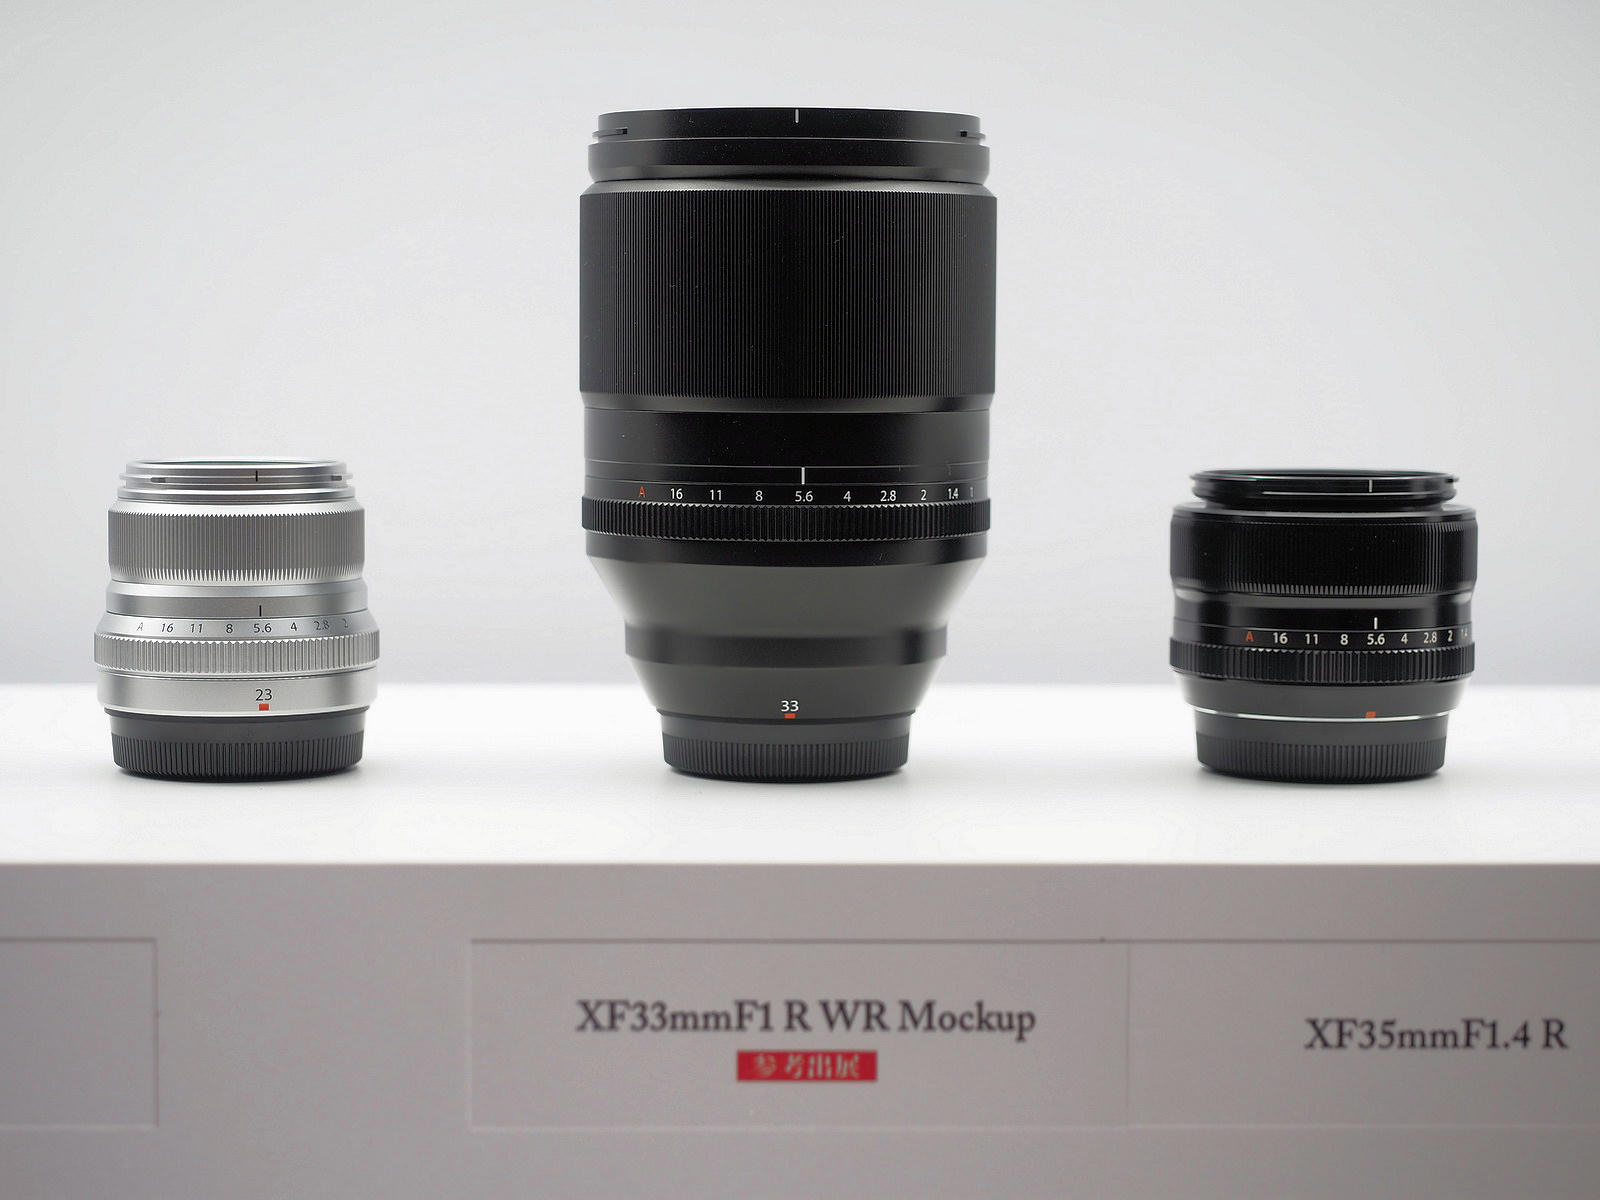 2019 CP+ show report: the Fuji Fujinon XF 33mm f/1 R WR lens is huge